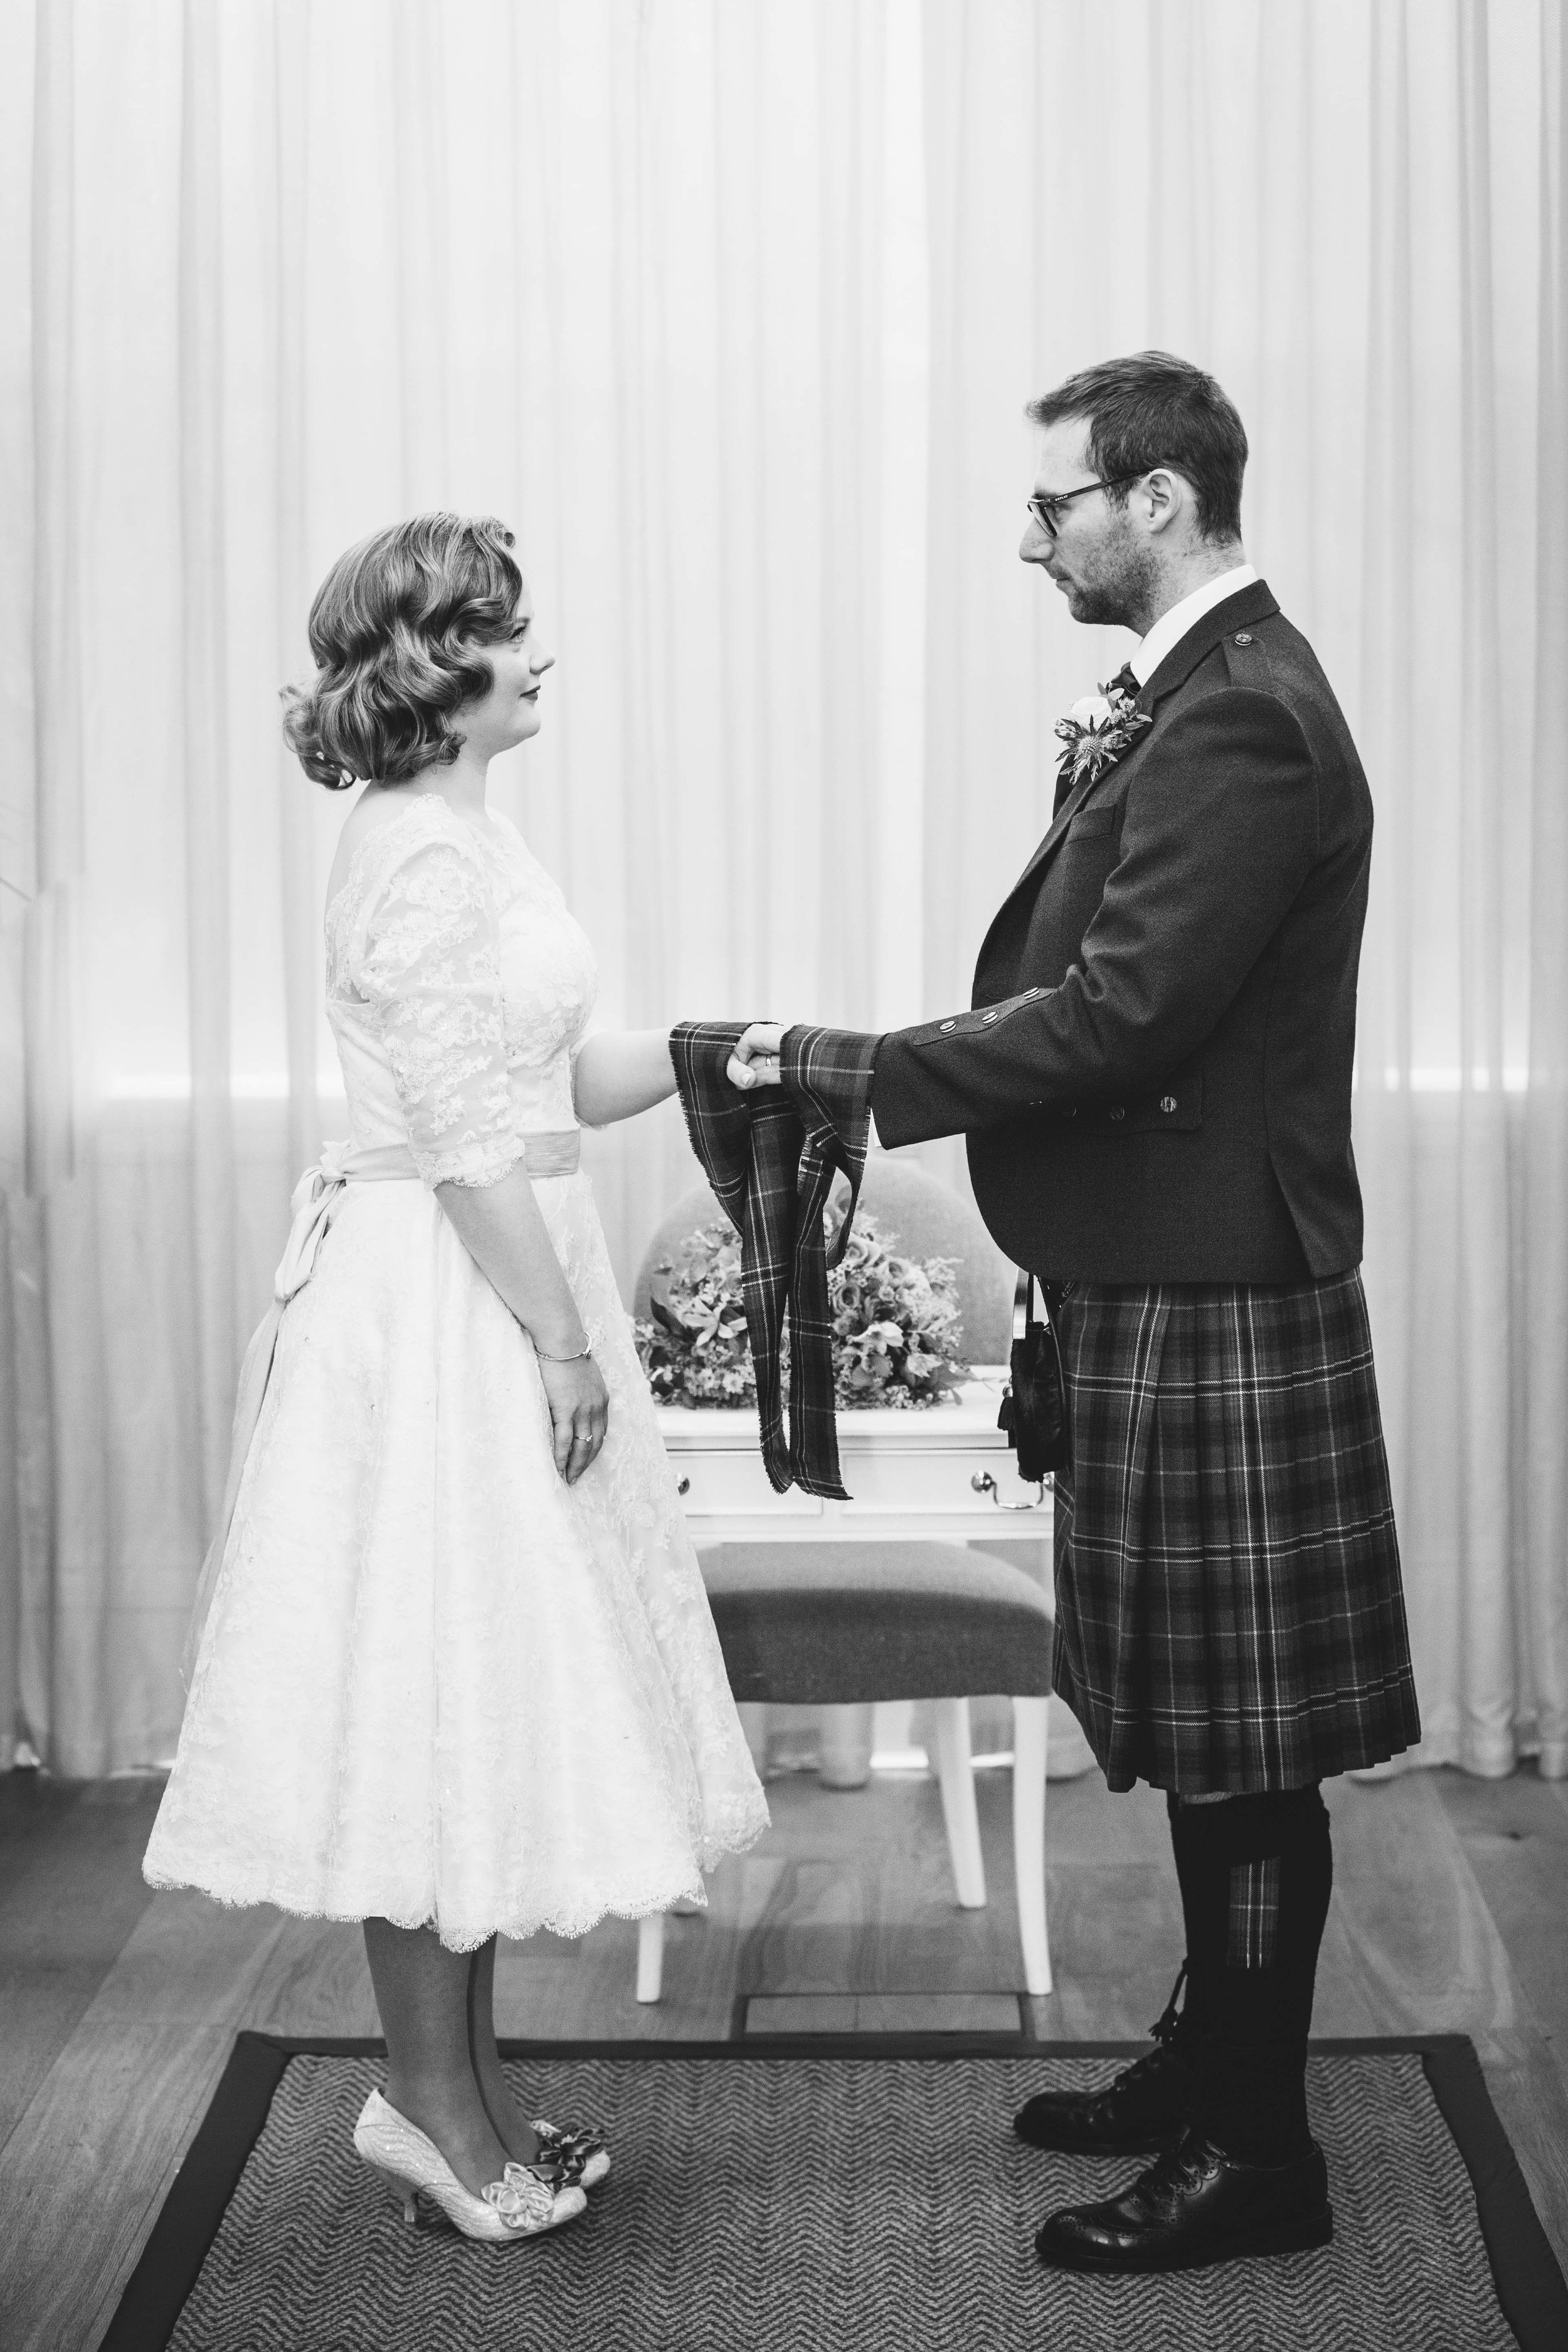 Sophie & Graeme Wedding Nov 2018  118  web.JPG